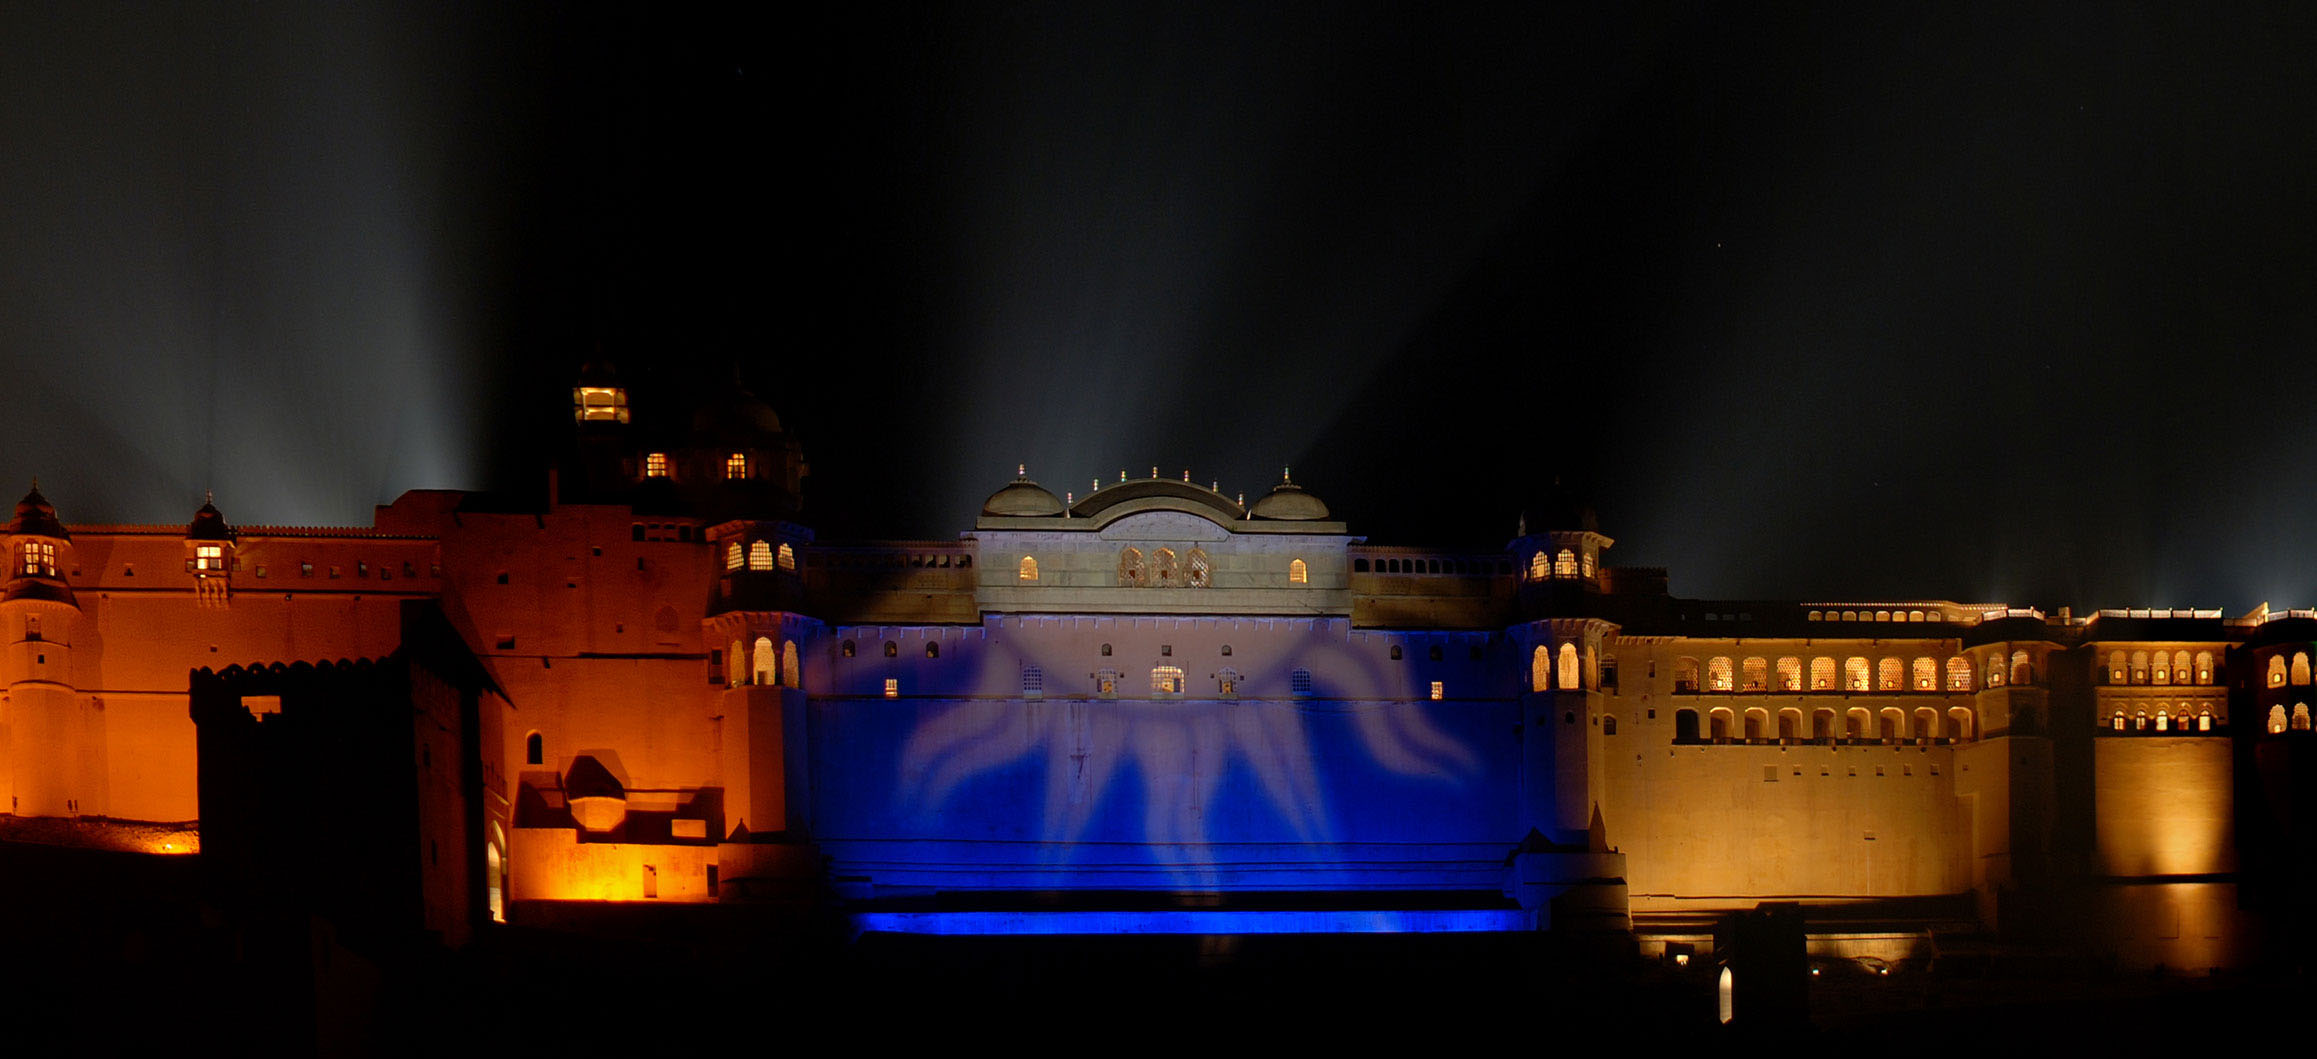 Travel into the past to experience stories and history through a spectacle of light and music.